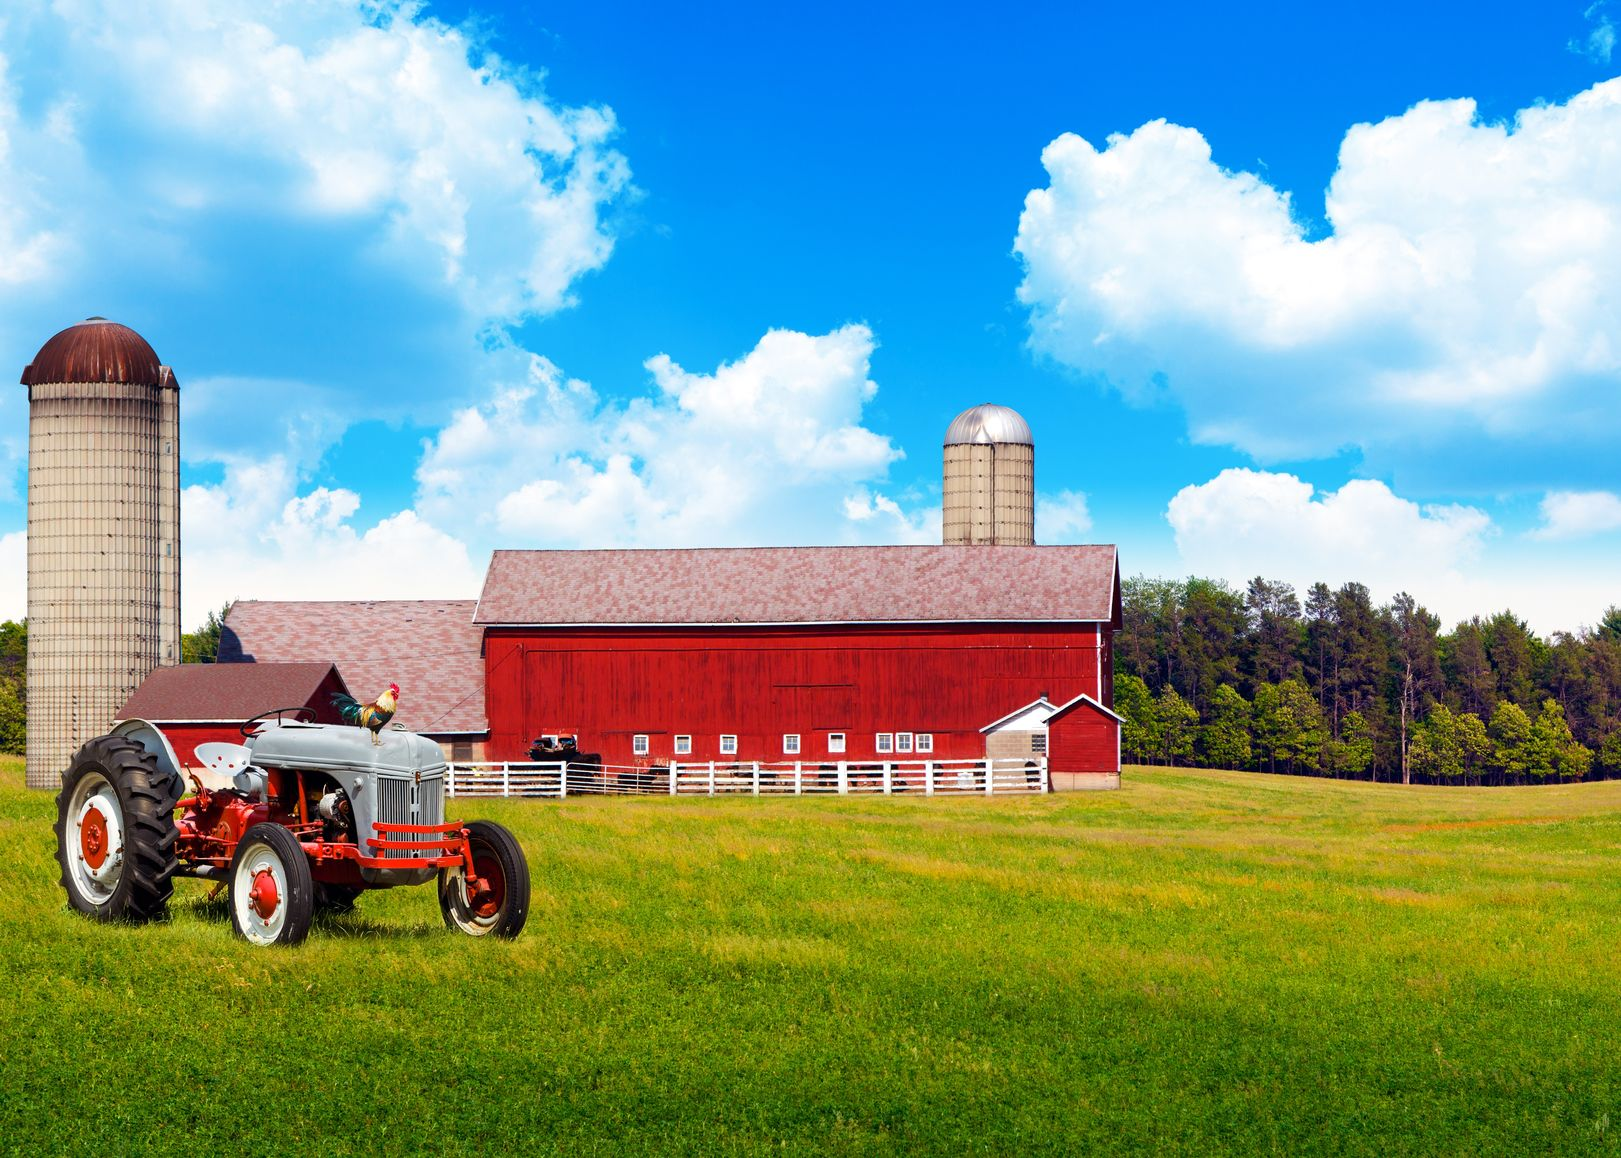 Maine. Farm & Ranch Insurance